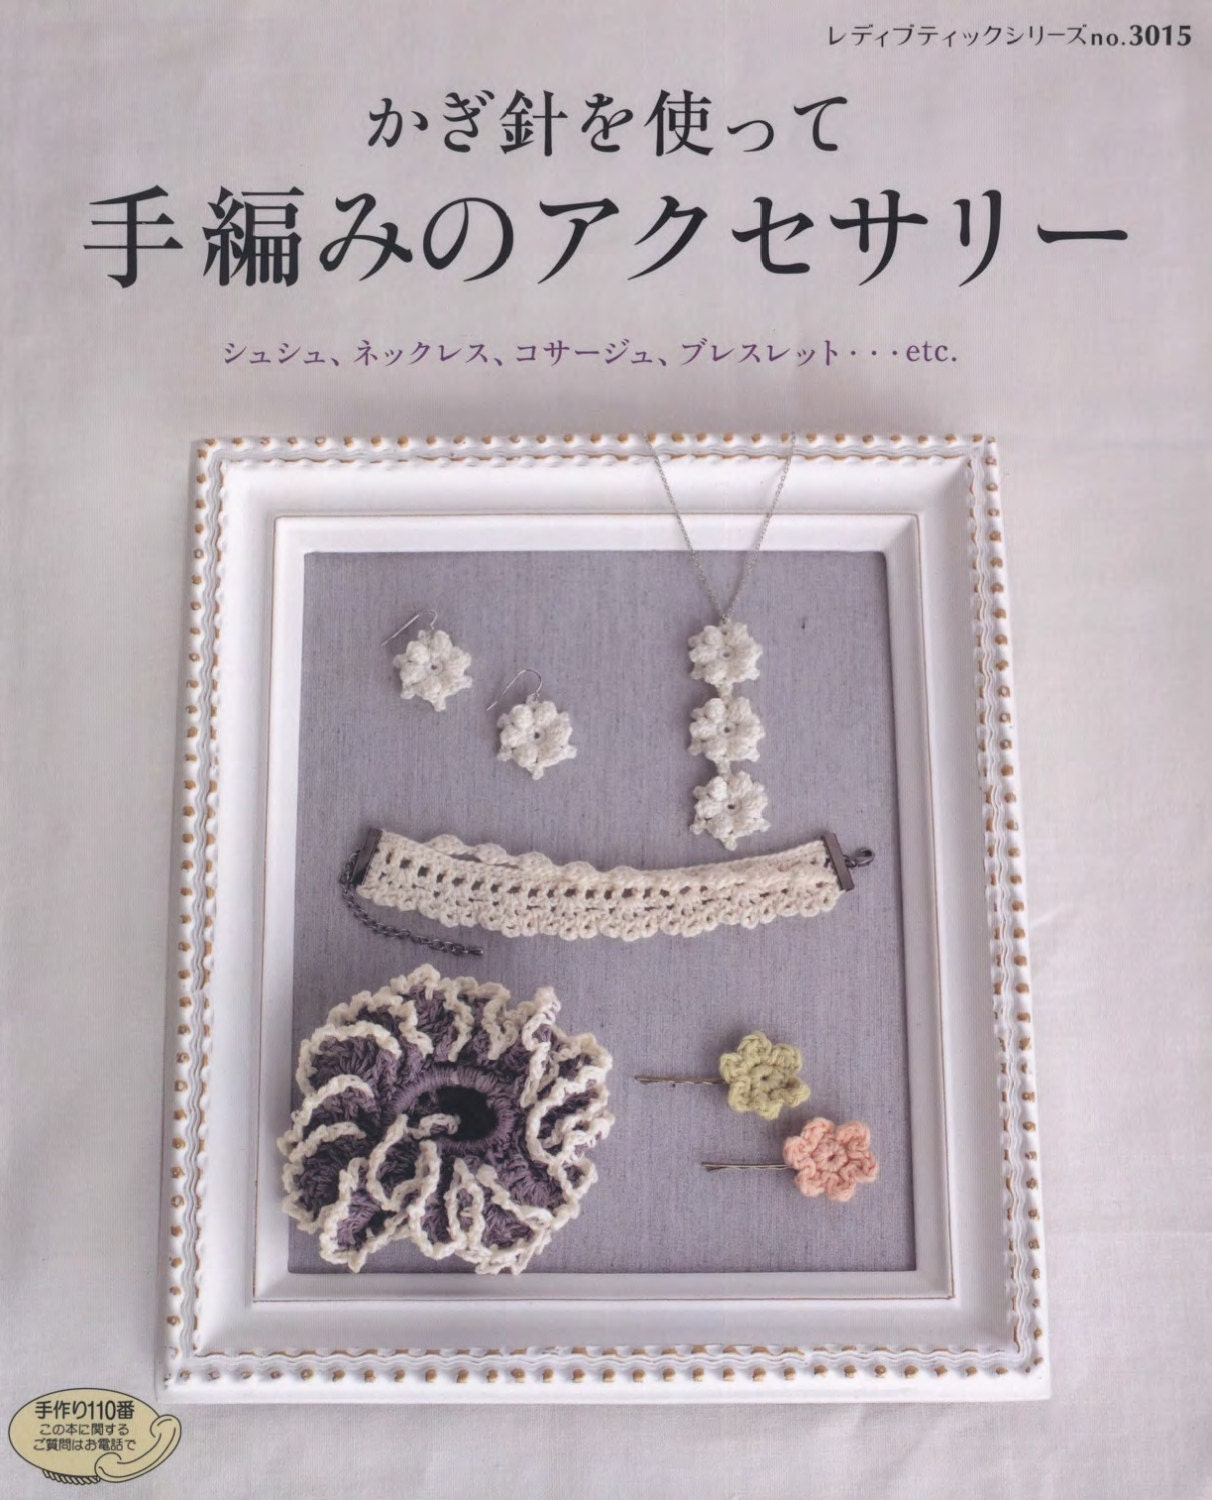 Crochet jewelry pattern japanese crochet japanese book for Jewelry books free download